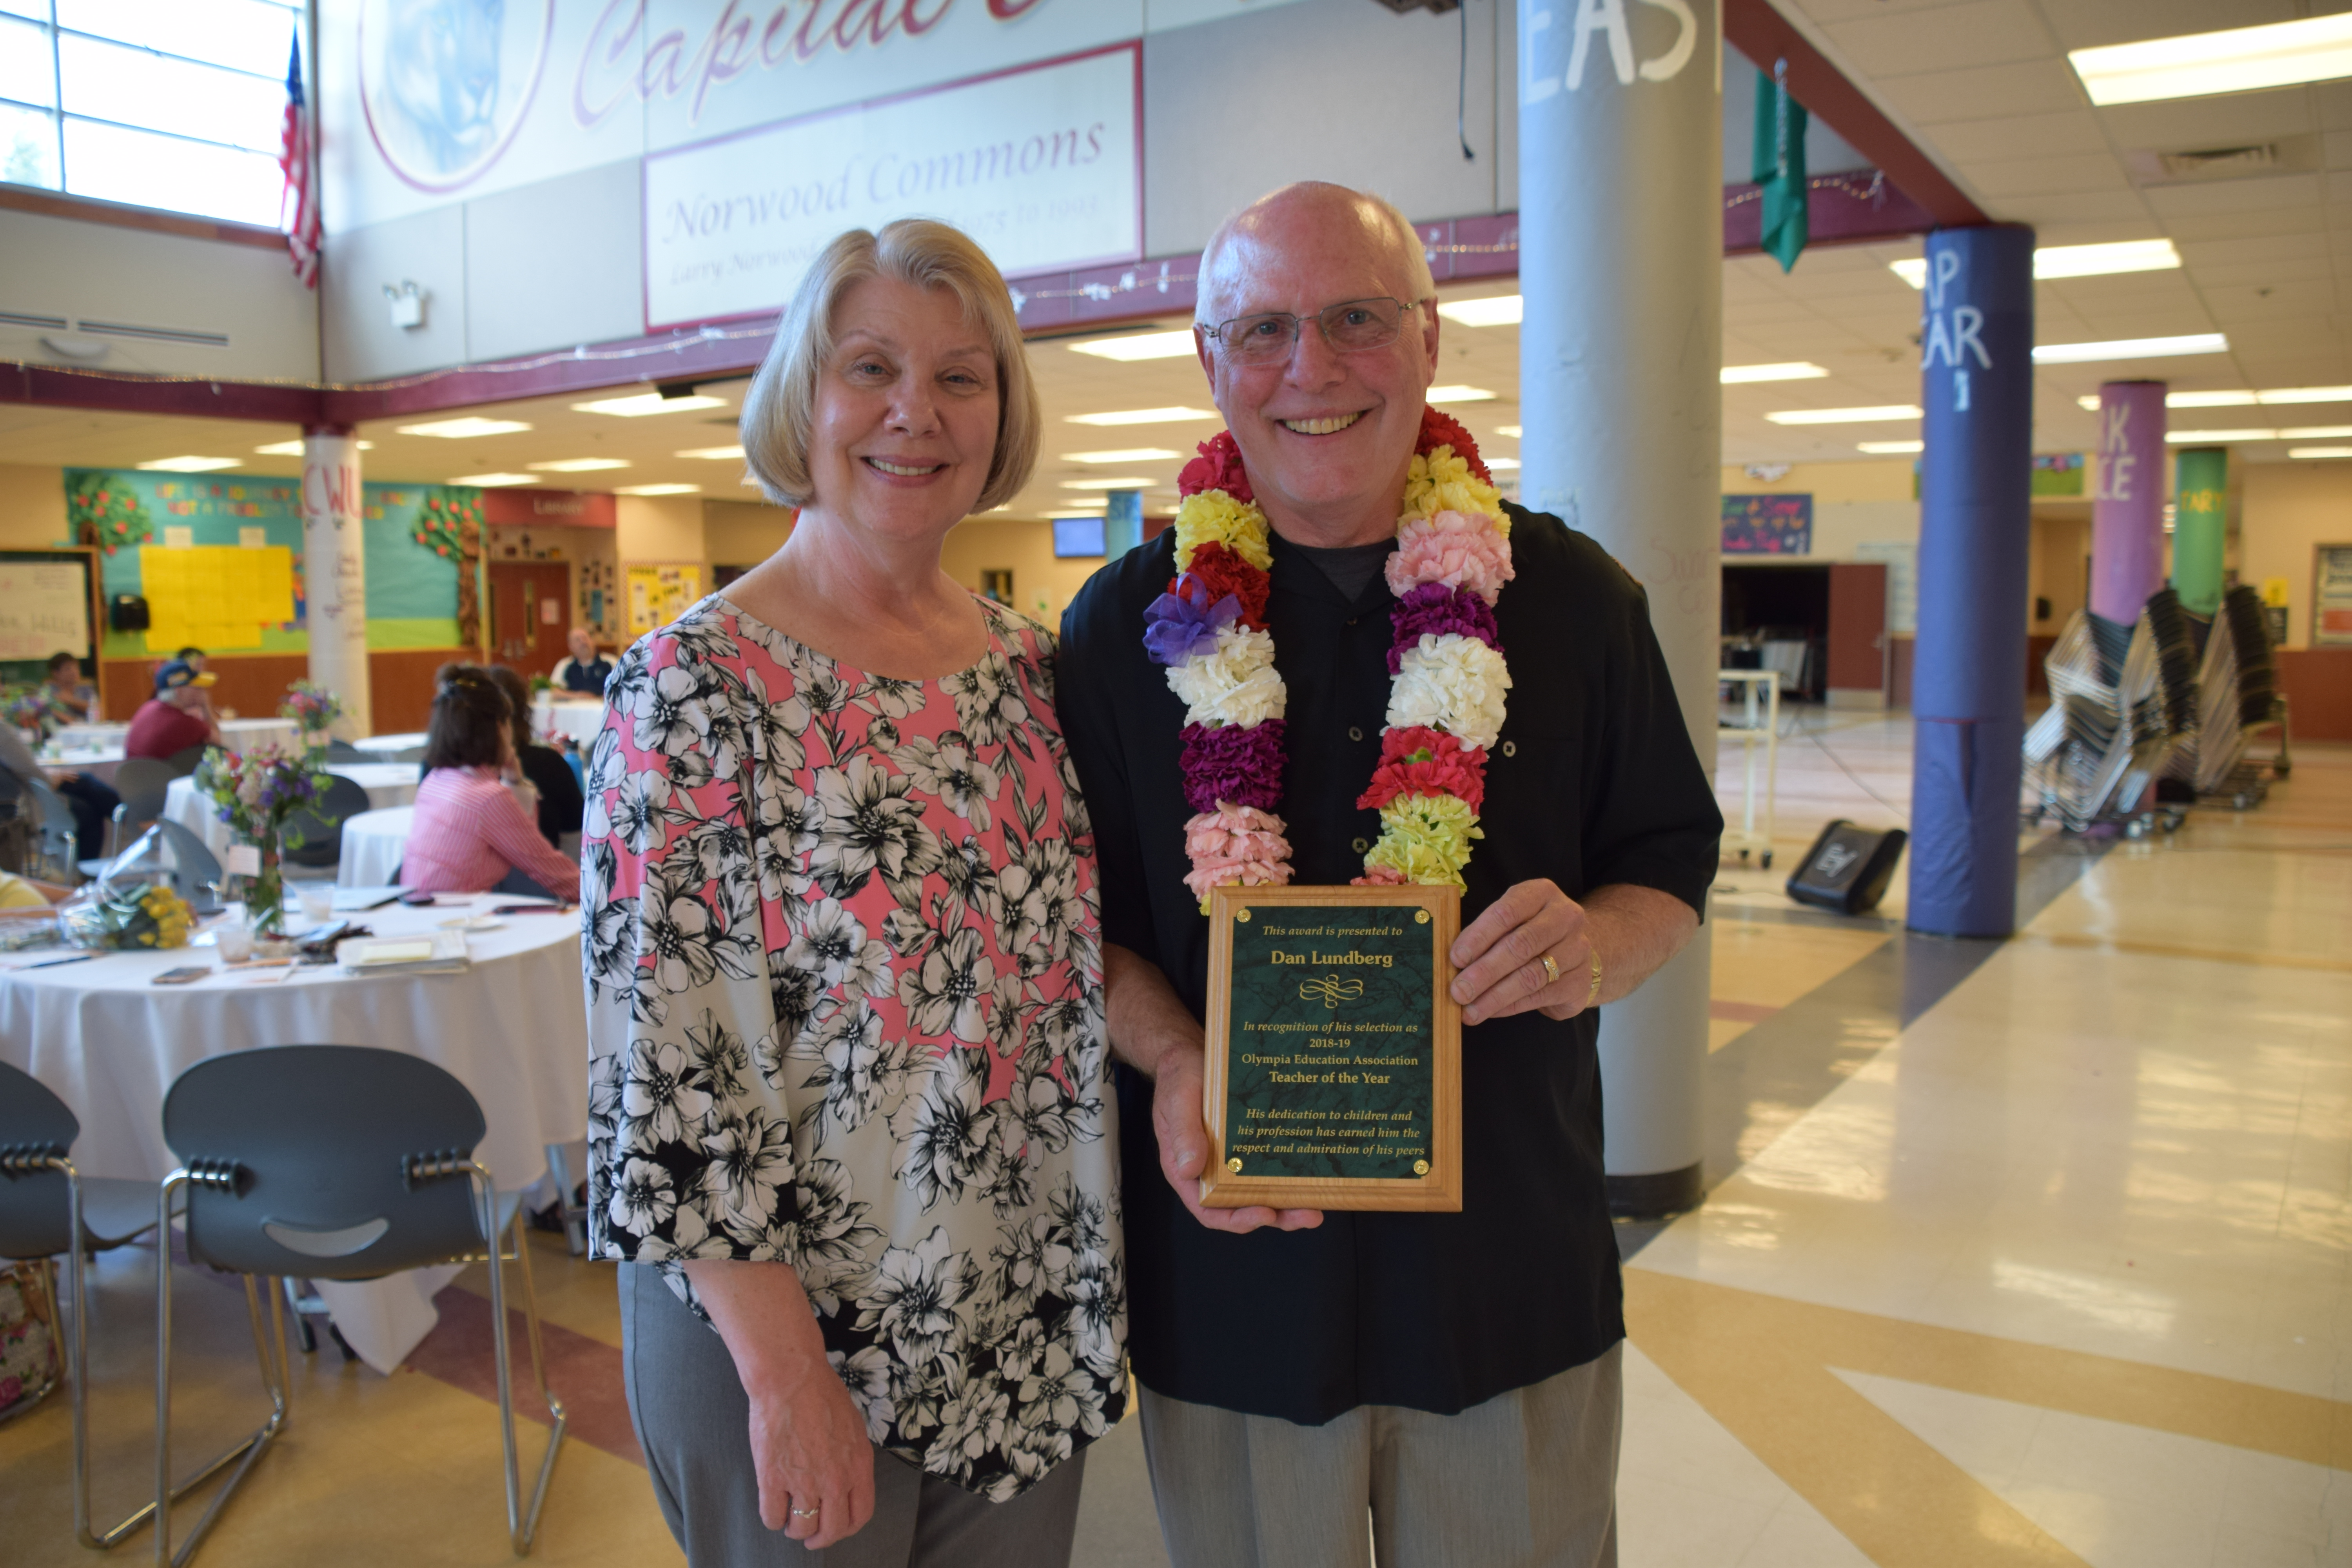 2019 Teacher of the Year Dan Lundberg shown with his wife at the Ice Cream Social